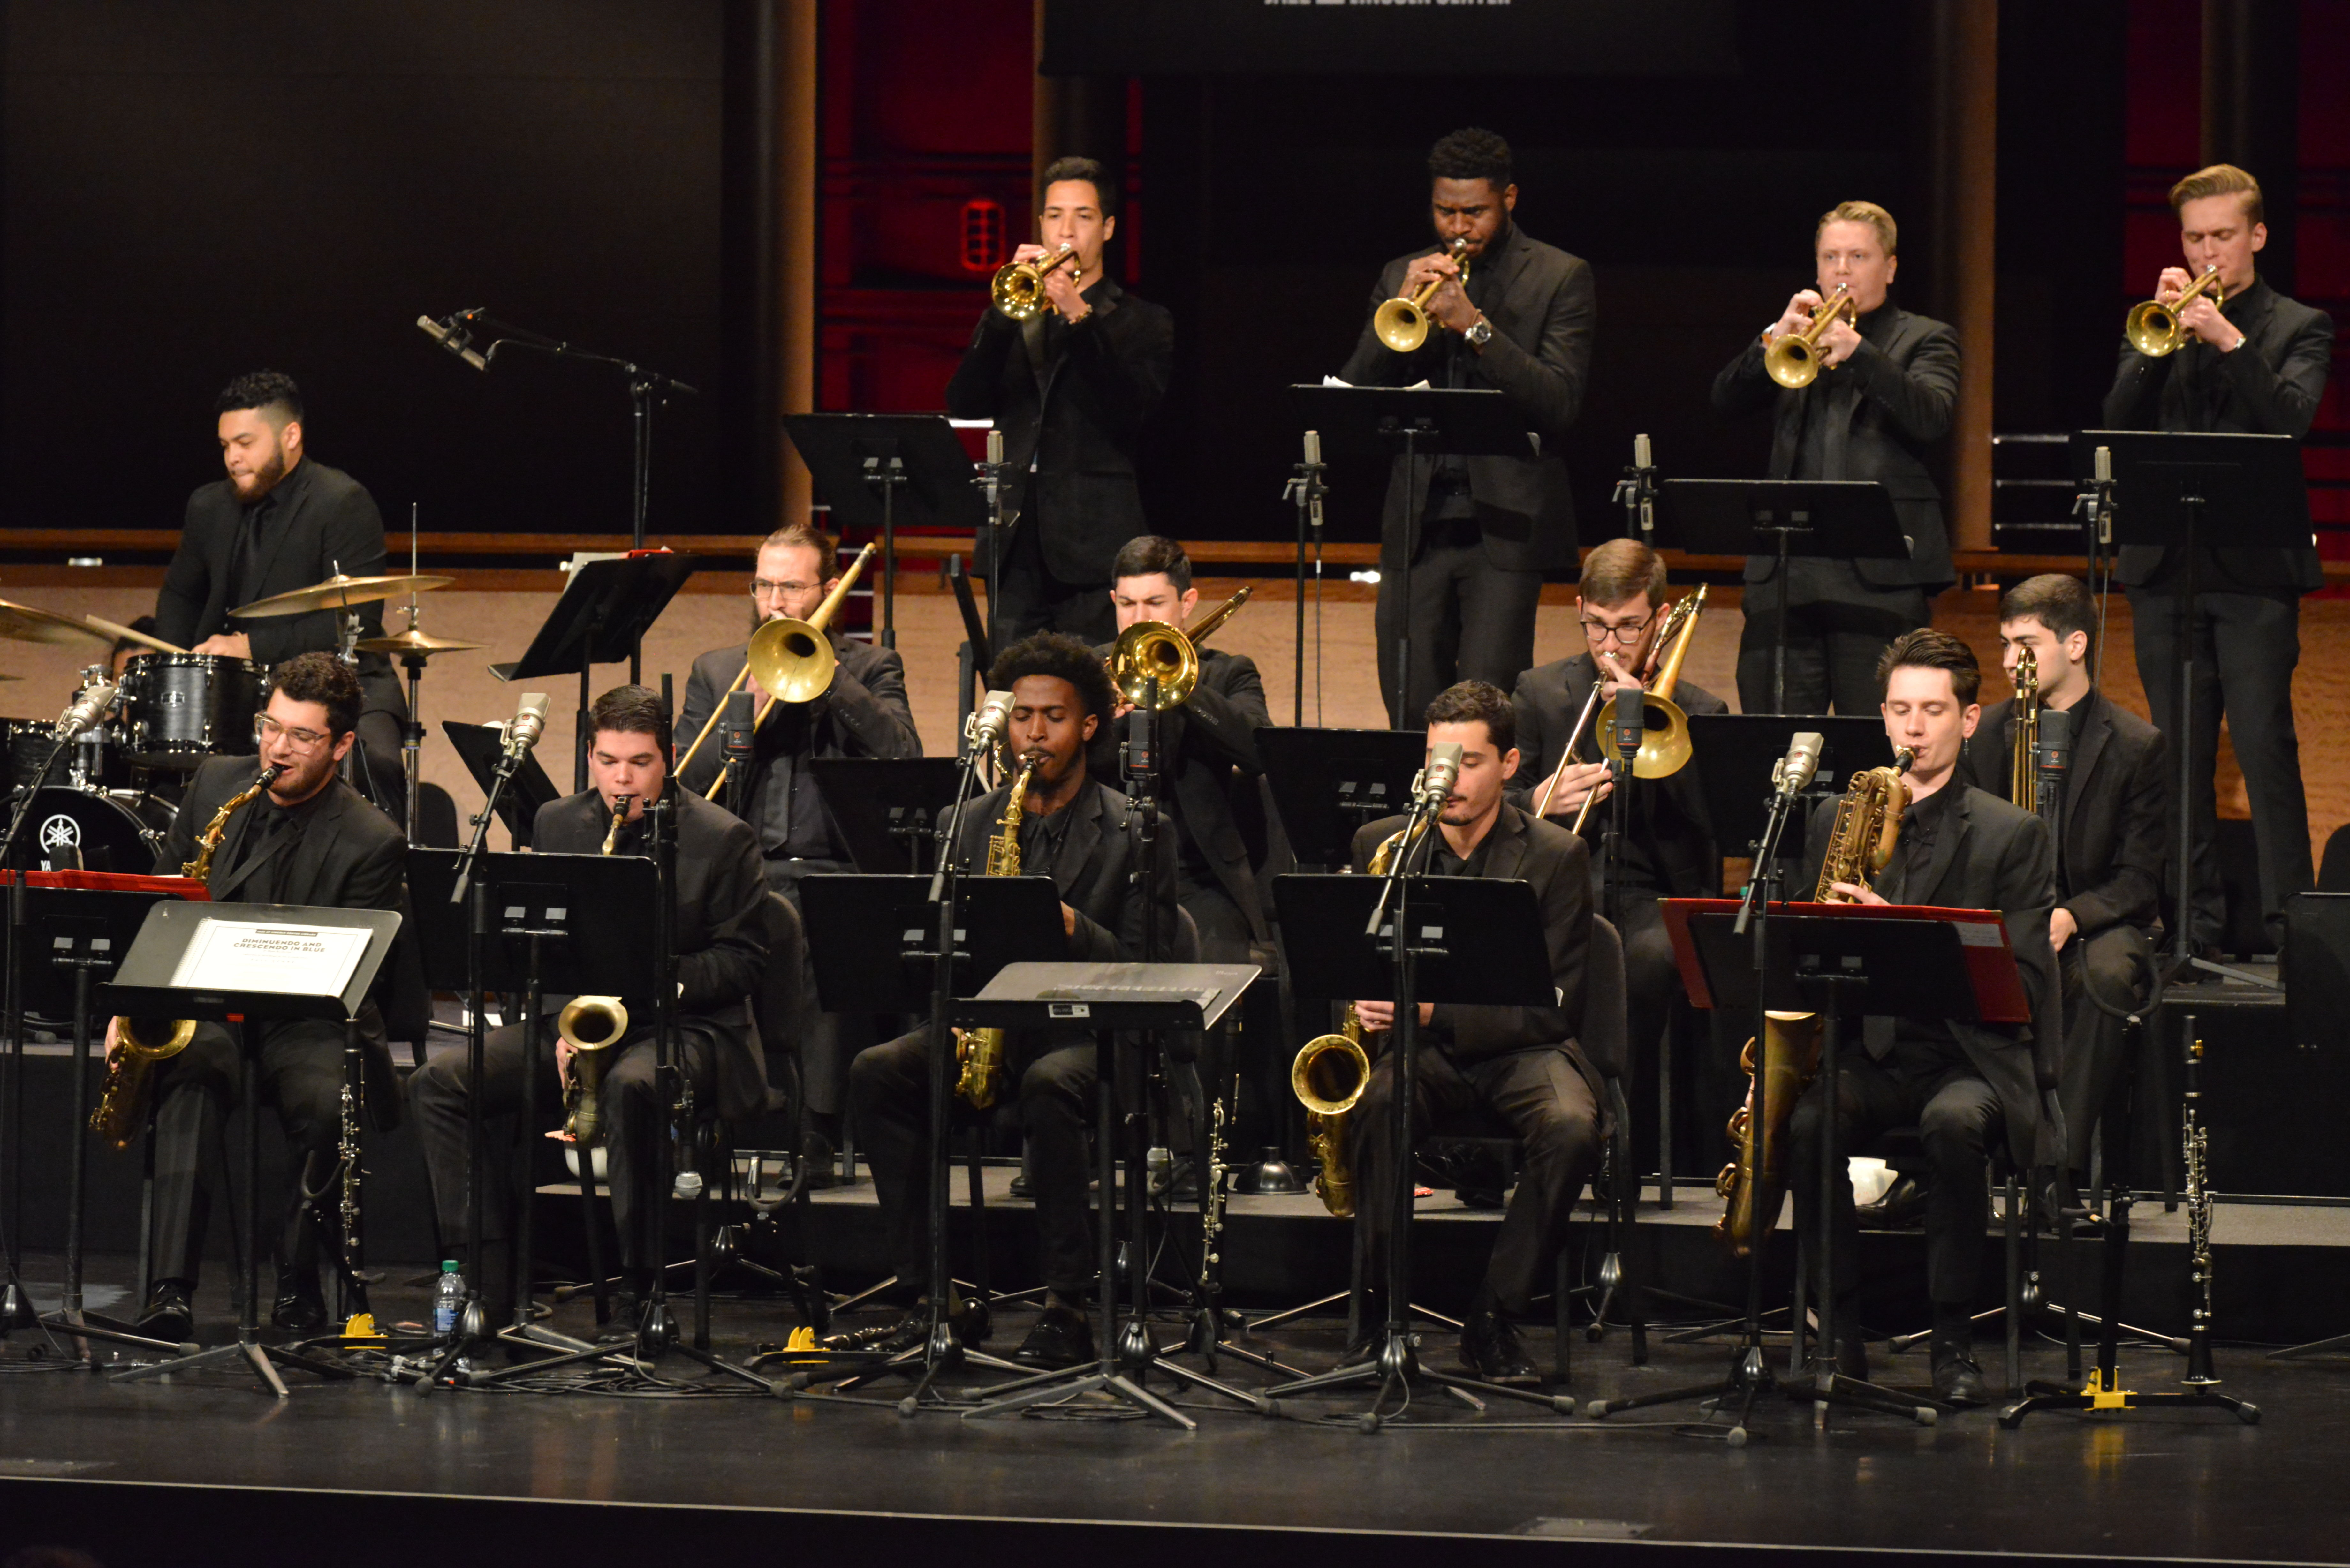 Temple University Jazz band musicians and director Terell Stafford performing on stage at Lincoln Center.